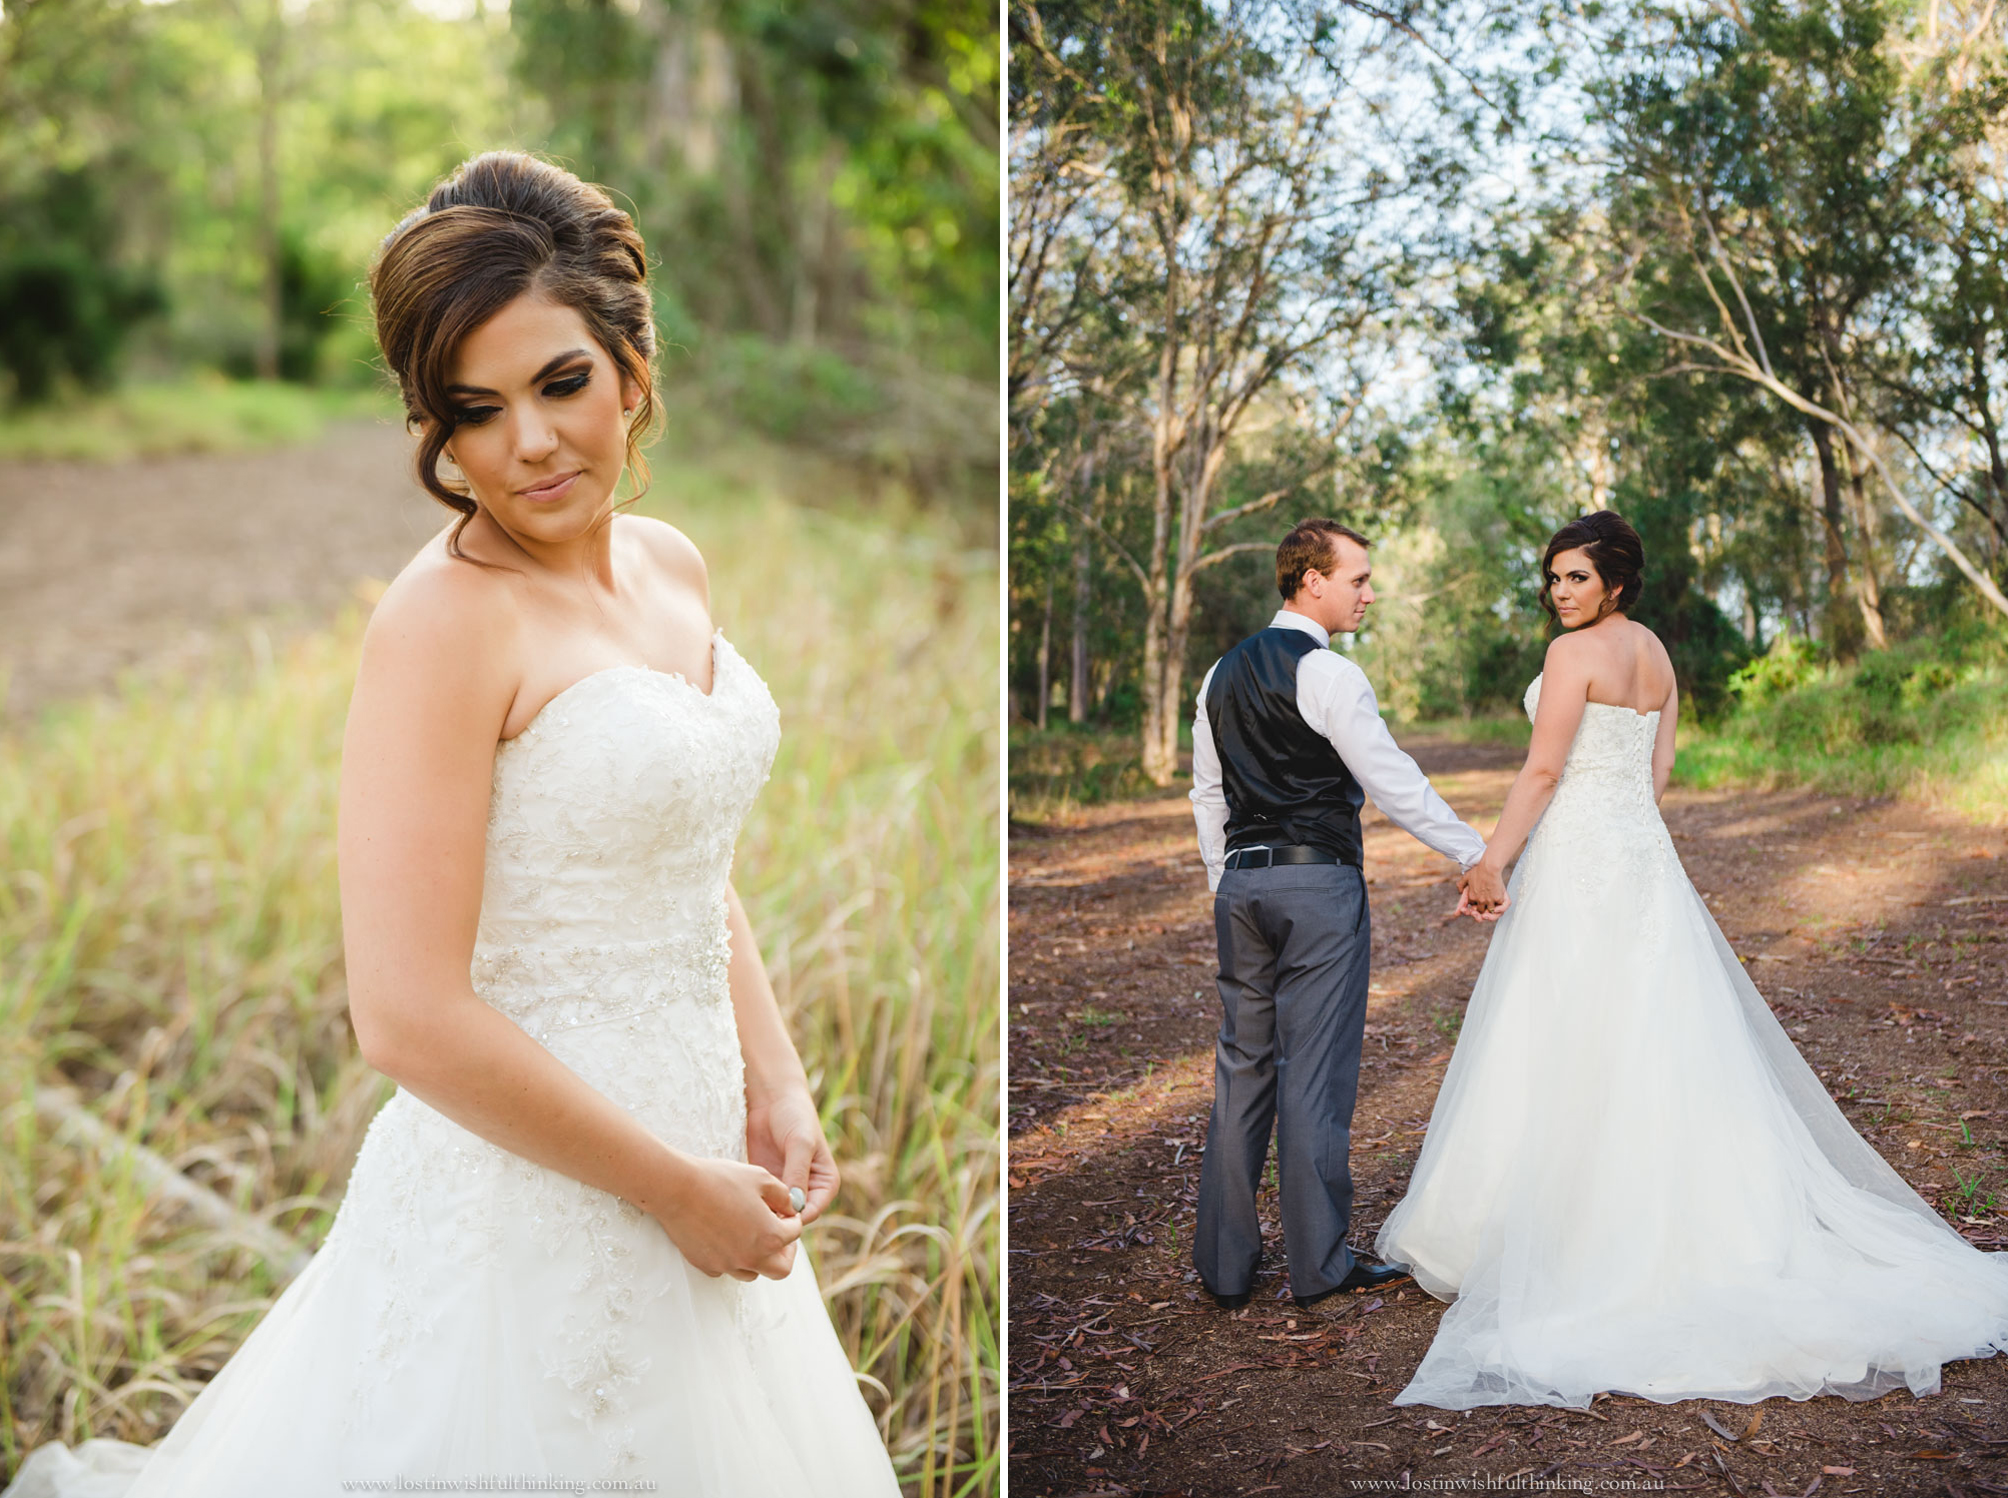 WEB-hannahmccawley-rachelle&murray-reshoot-sunsetwedding-diptych4